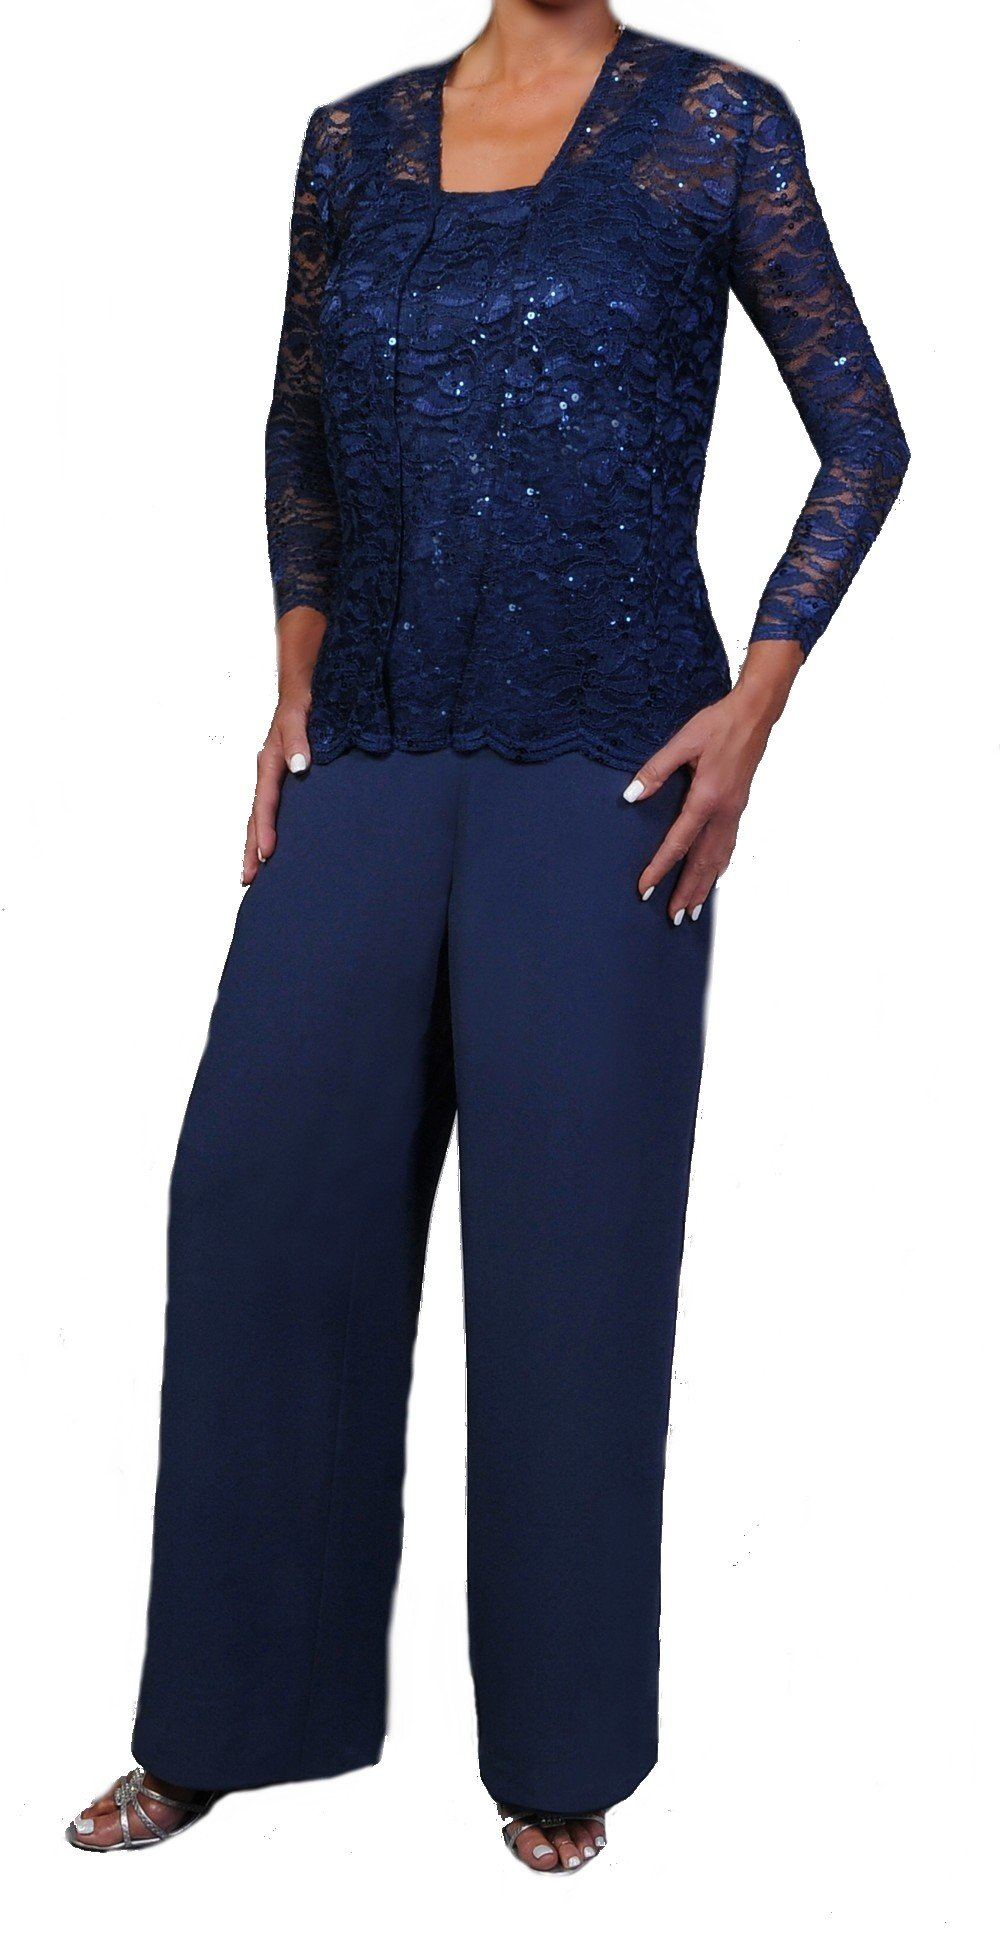 Elegant Mother of the Bride Formal 3 Piece Pant Suit Lightly Beaded Lace (XL, Navy)